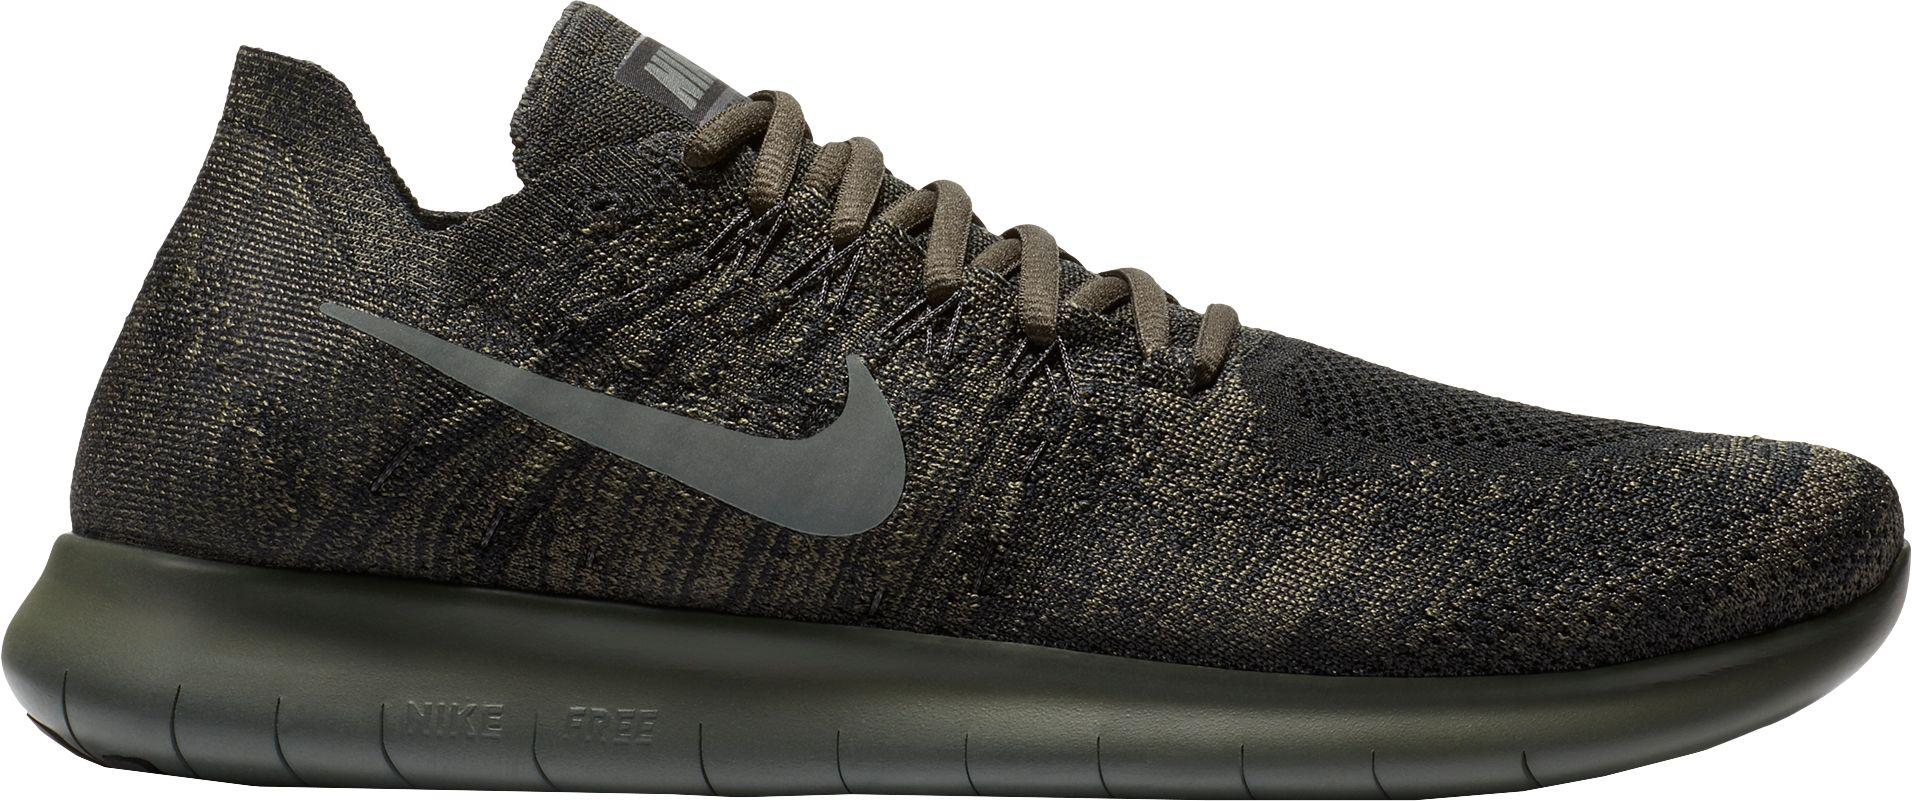 b5cfef43ffca ... ireland nike black free rn flyknit 2017 running shoes for men lyst  dcb65 14e67